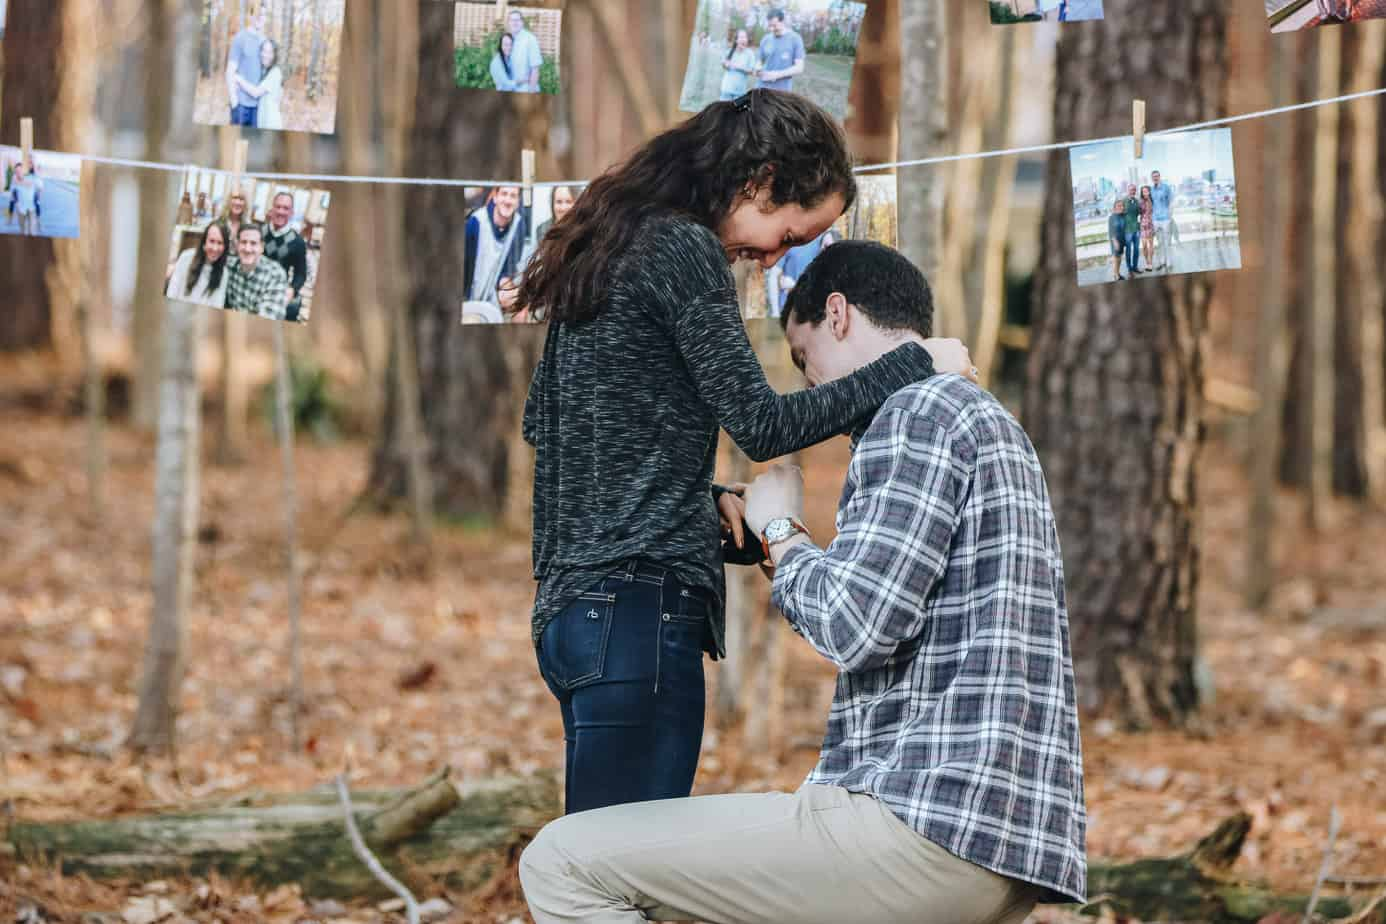 engagement-51-of-143